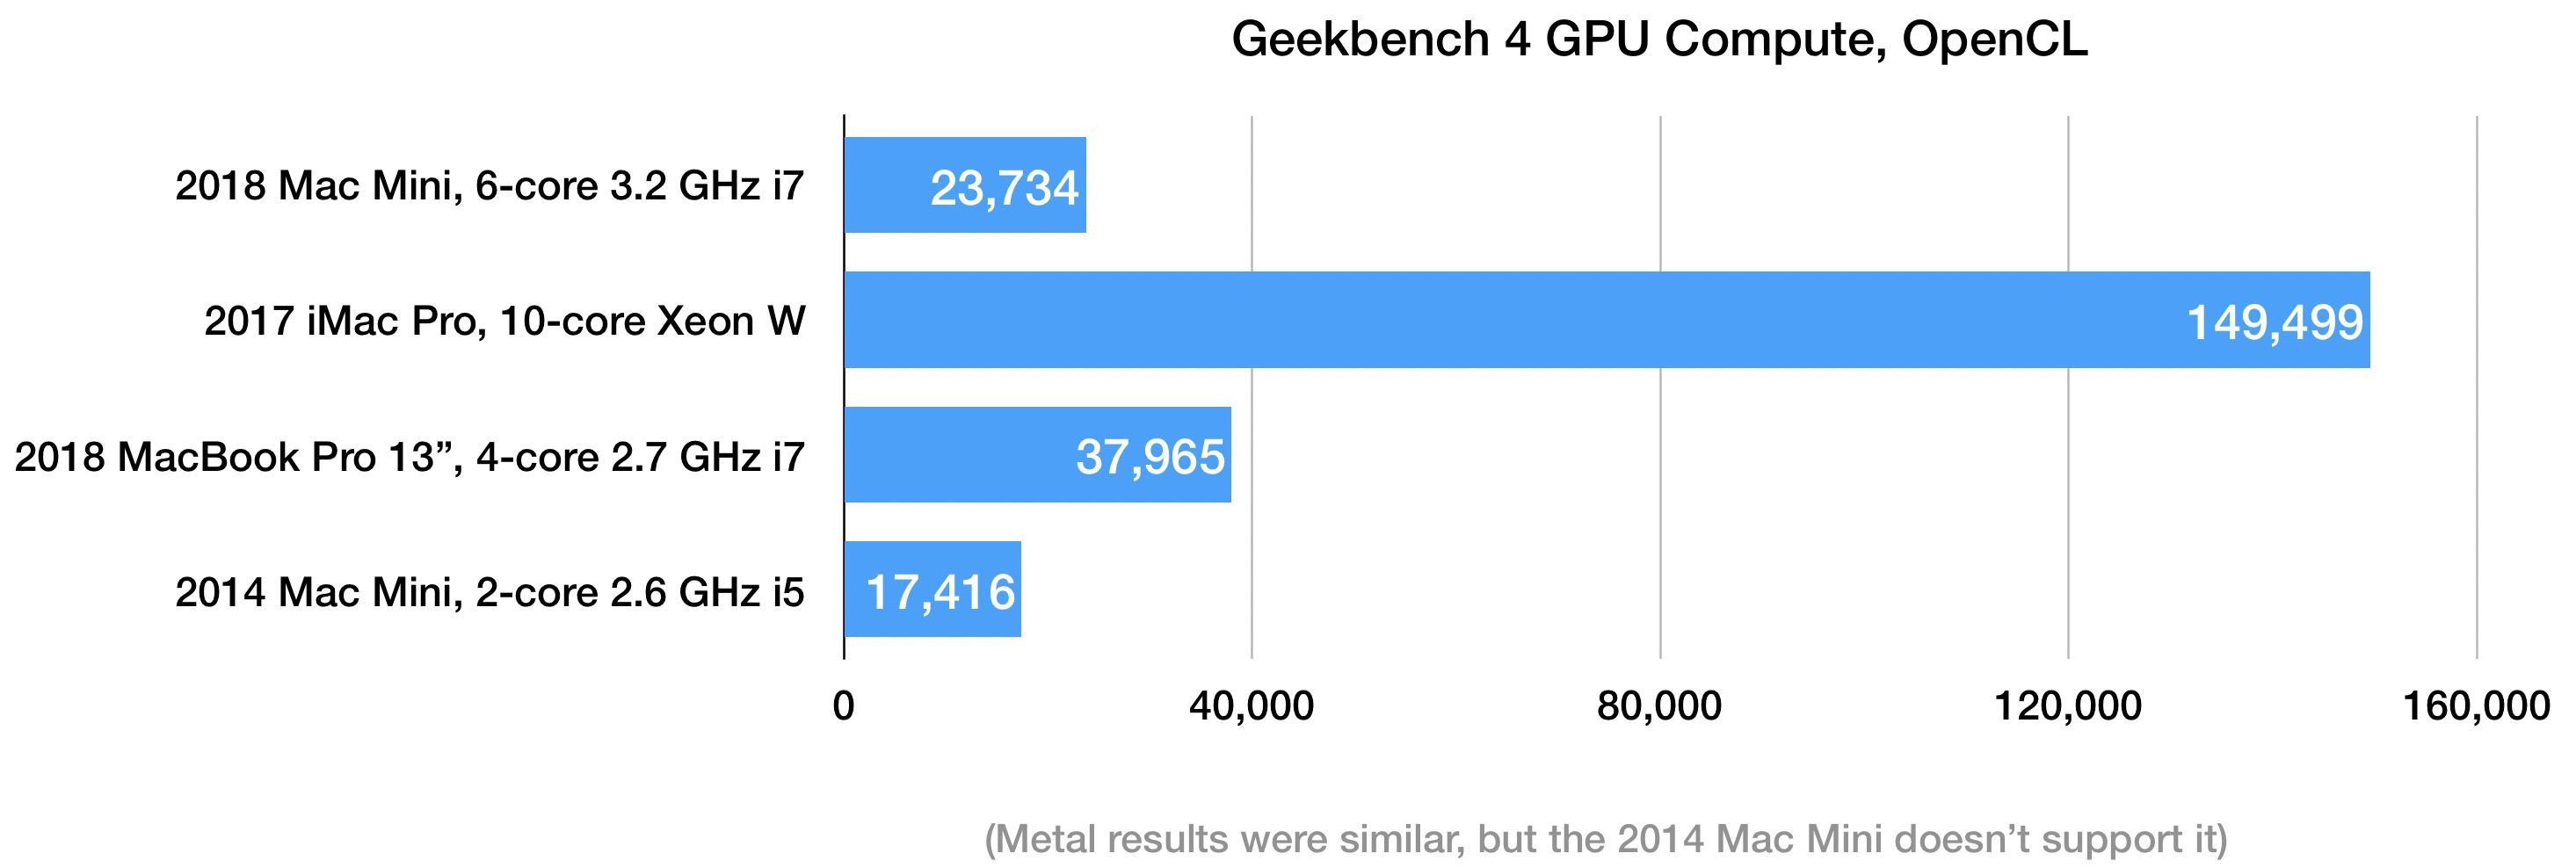 Geekbench 4 GPU Mac mini 2018